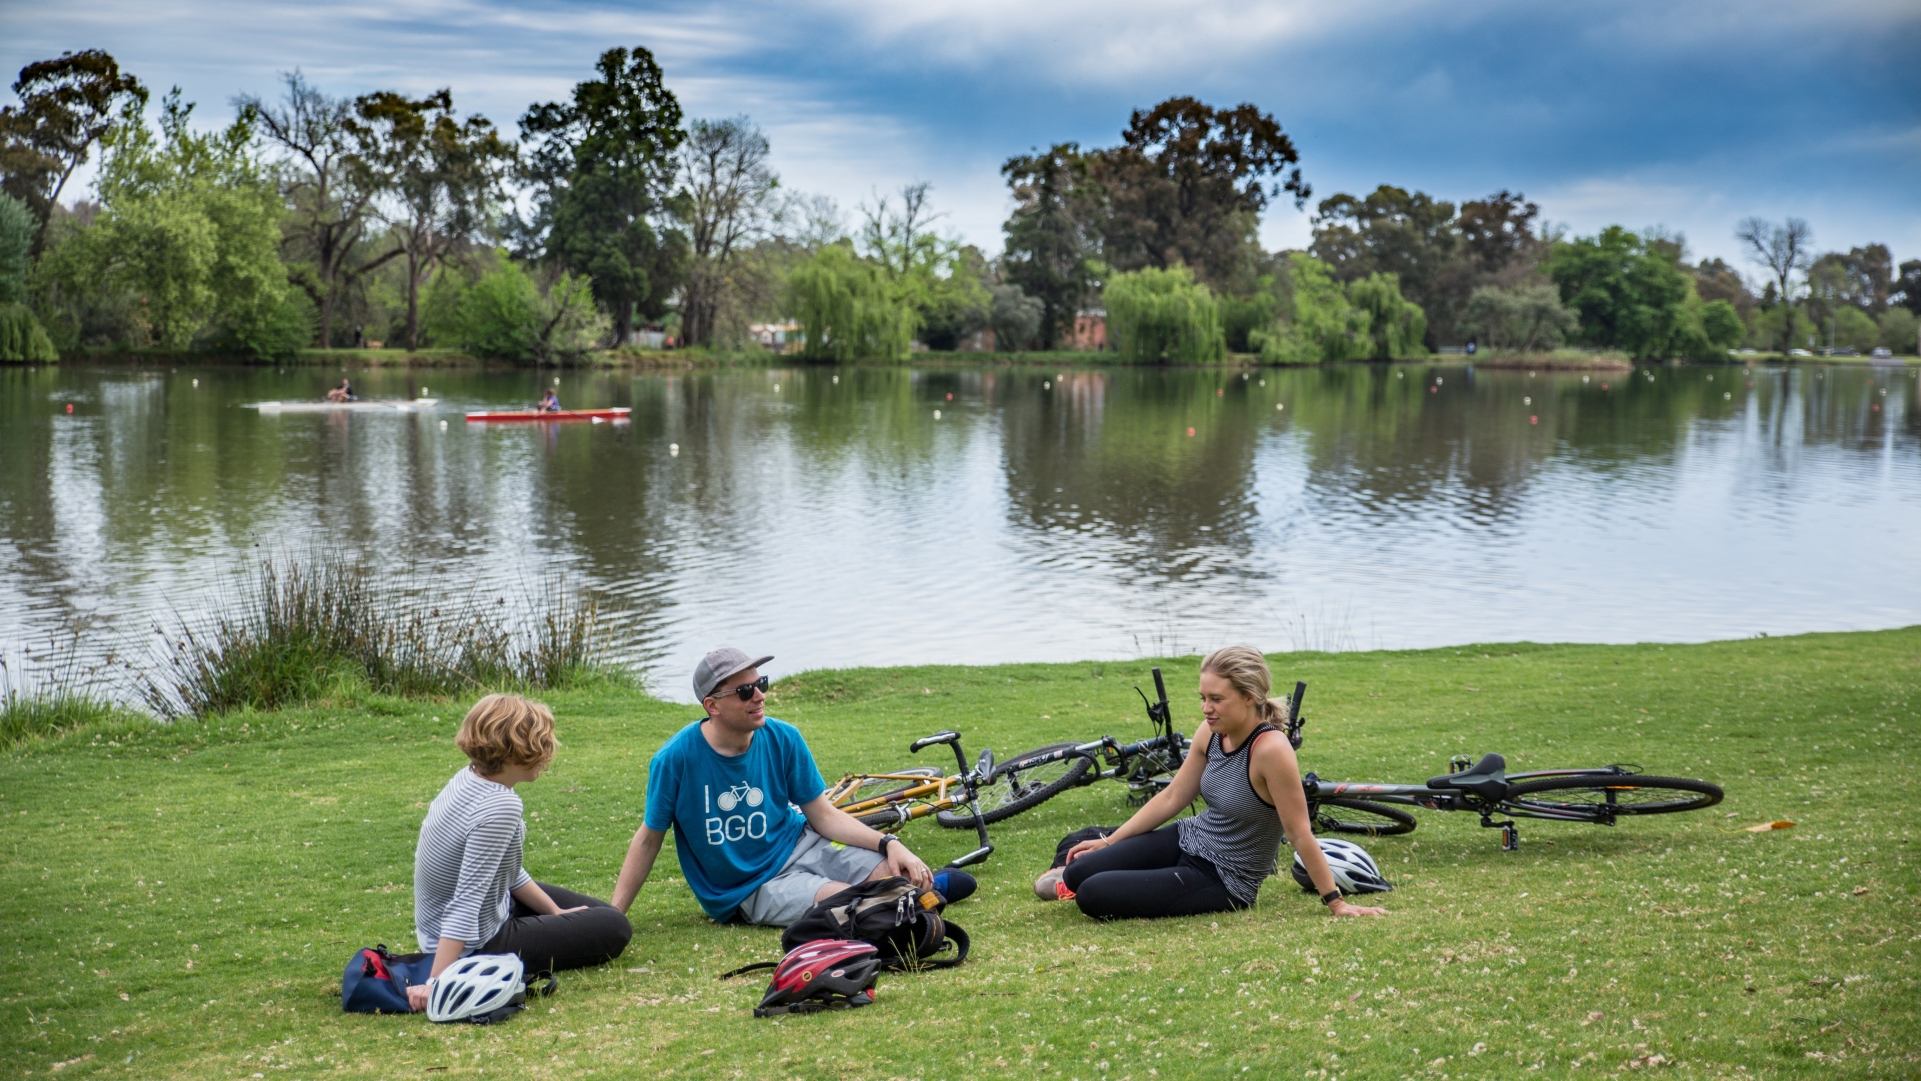 Bike riders at lake Weeroona